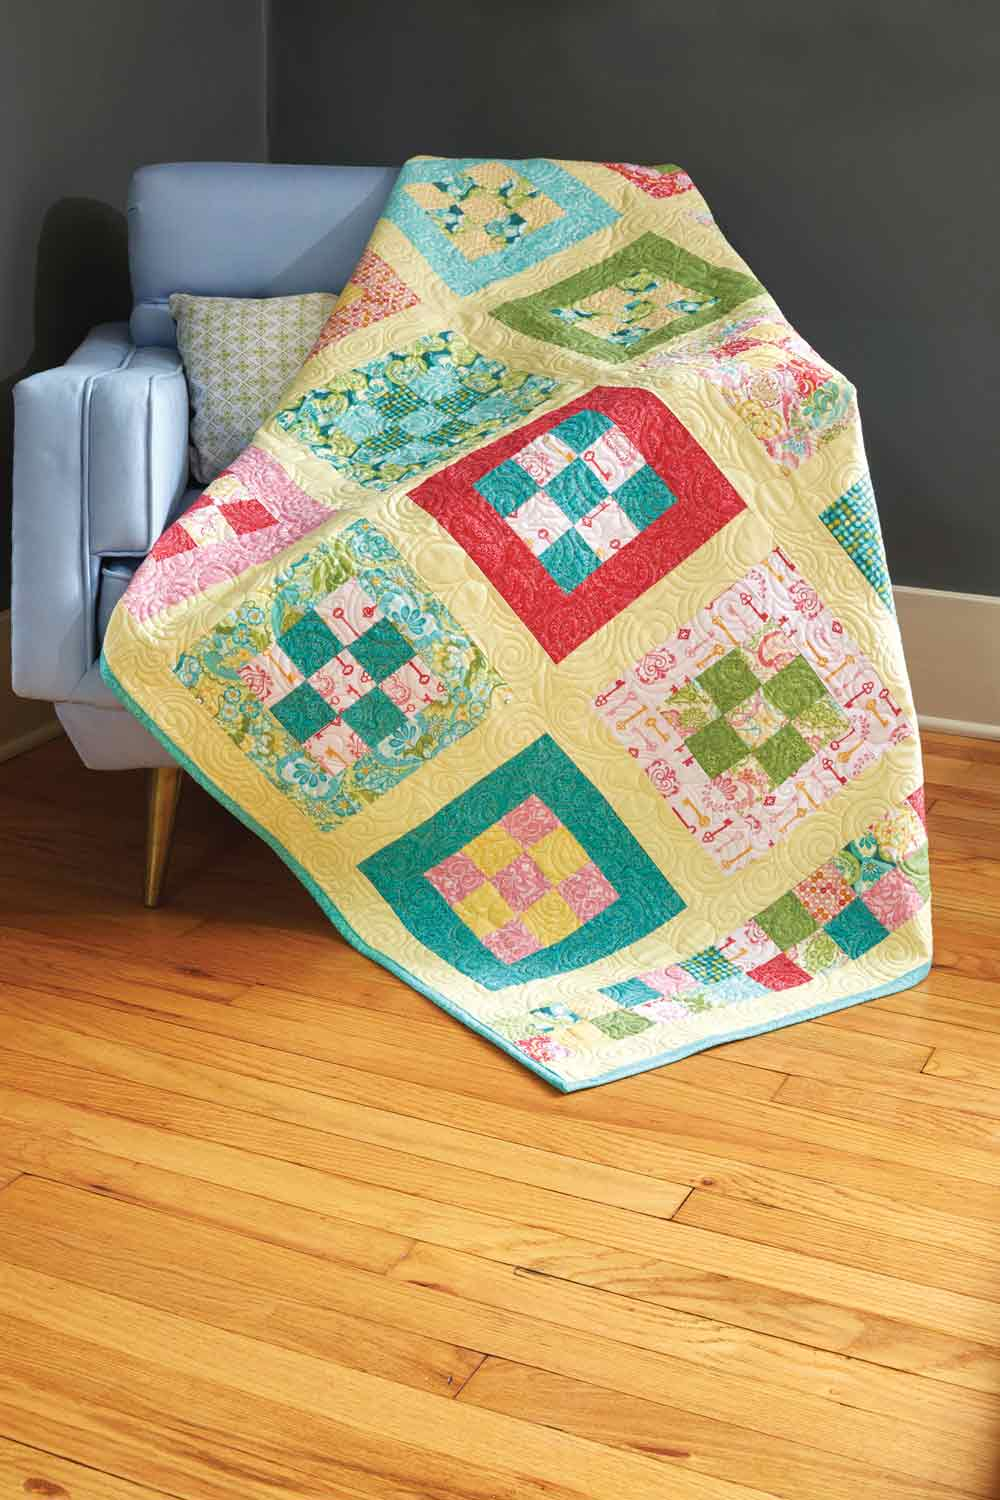 Throw Quilt Patterns Archives - The Quilting Company